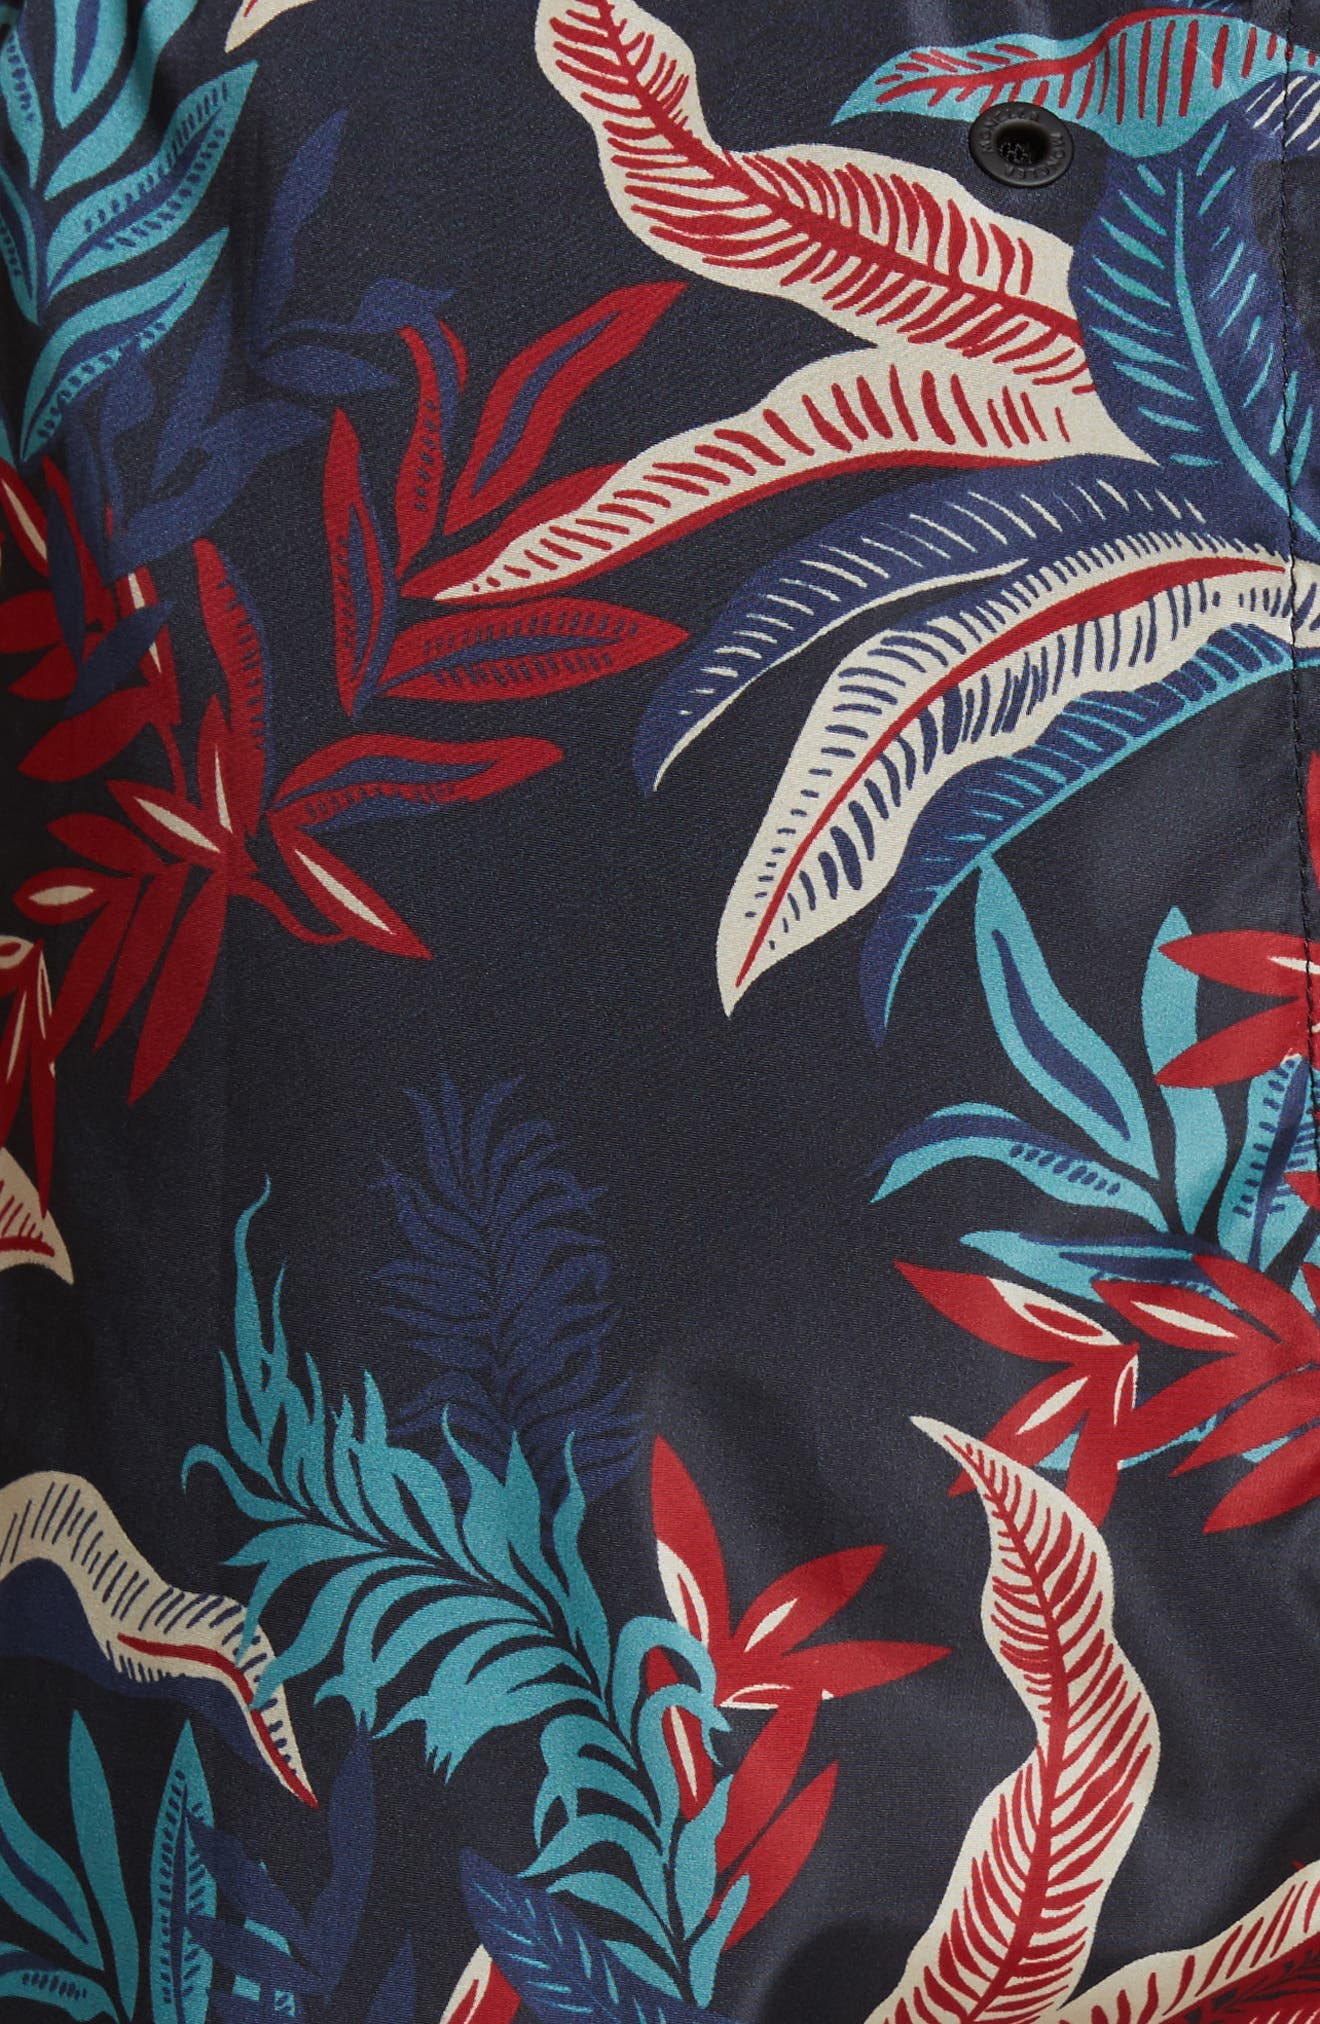 Floral Print Swim Trunks,                             Alternate thumbnail 5, color,                             Dark Blue